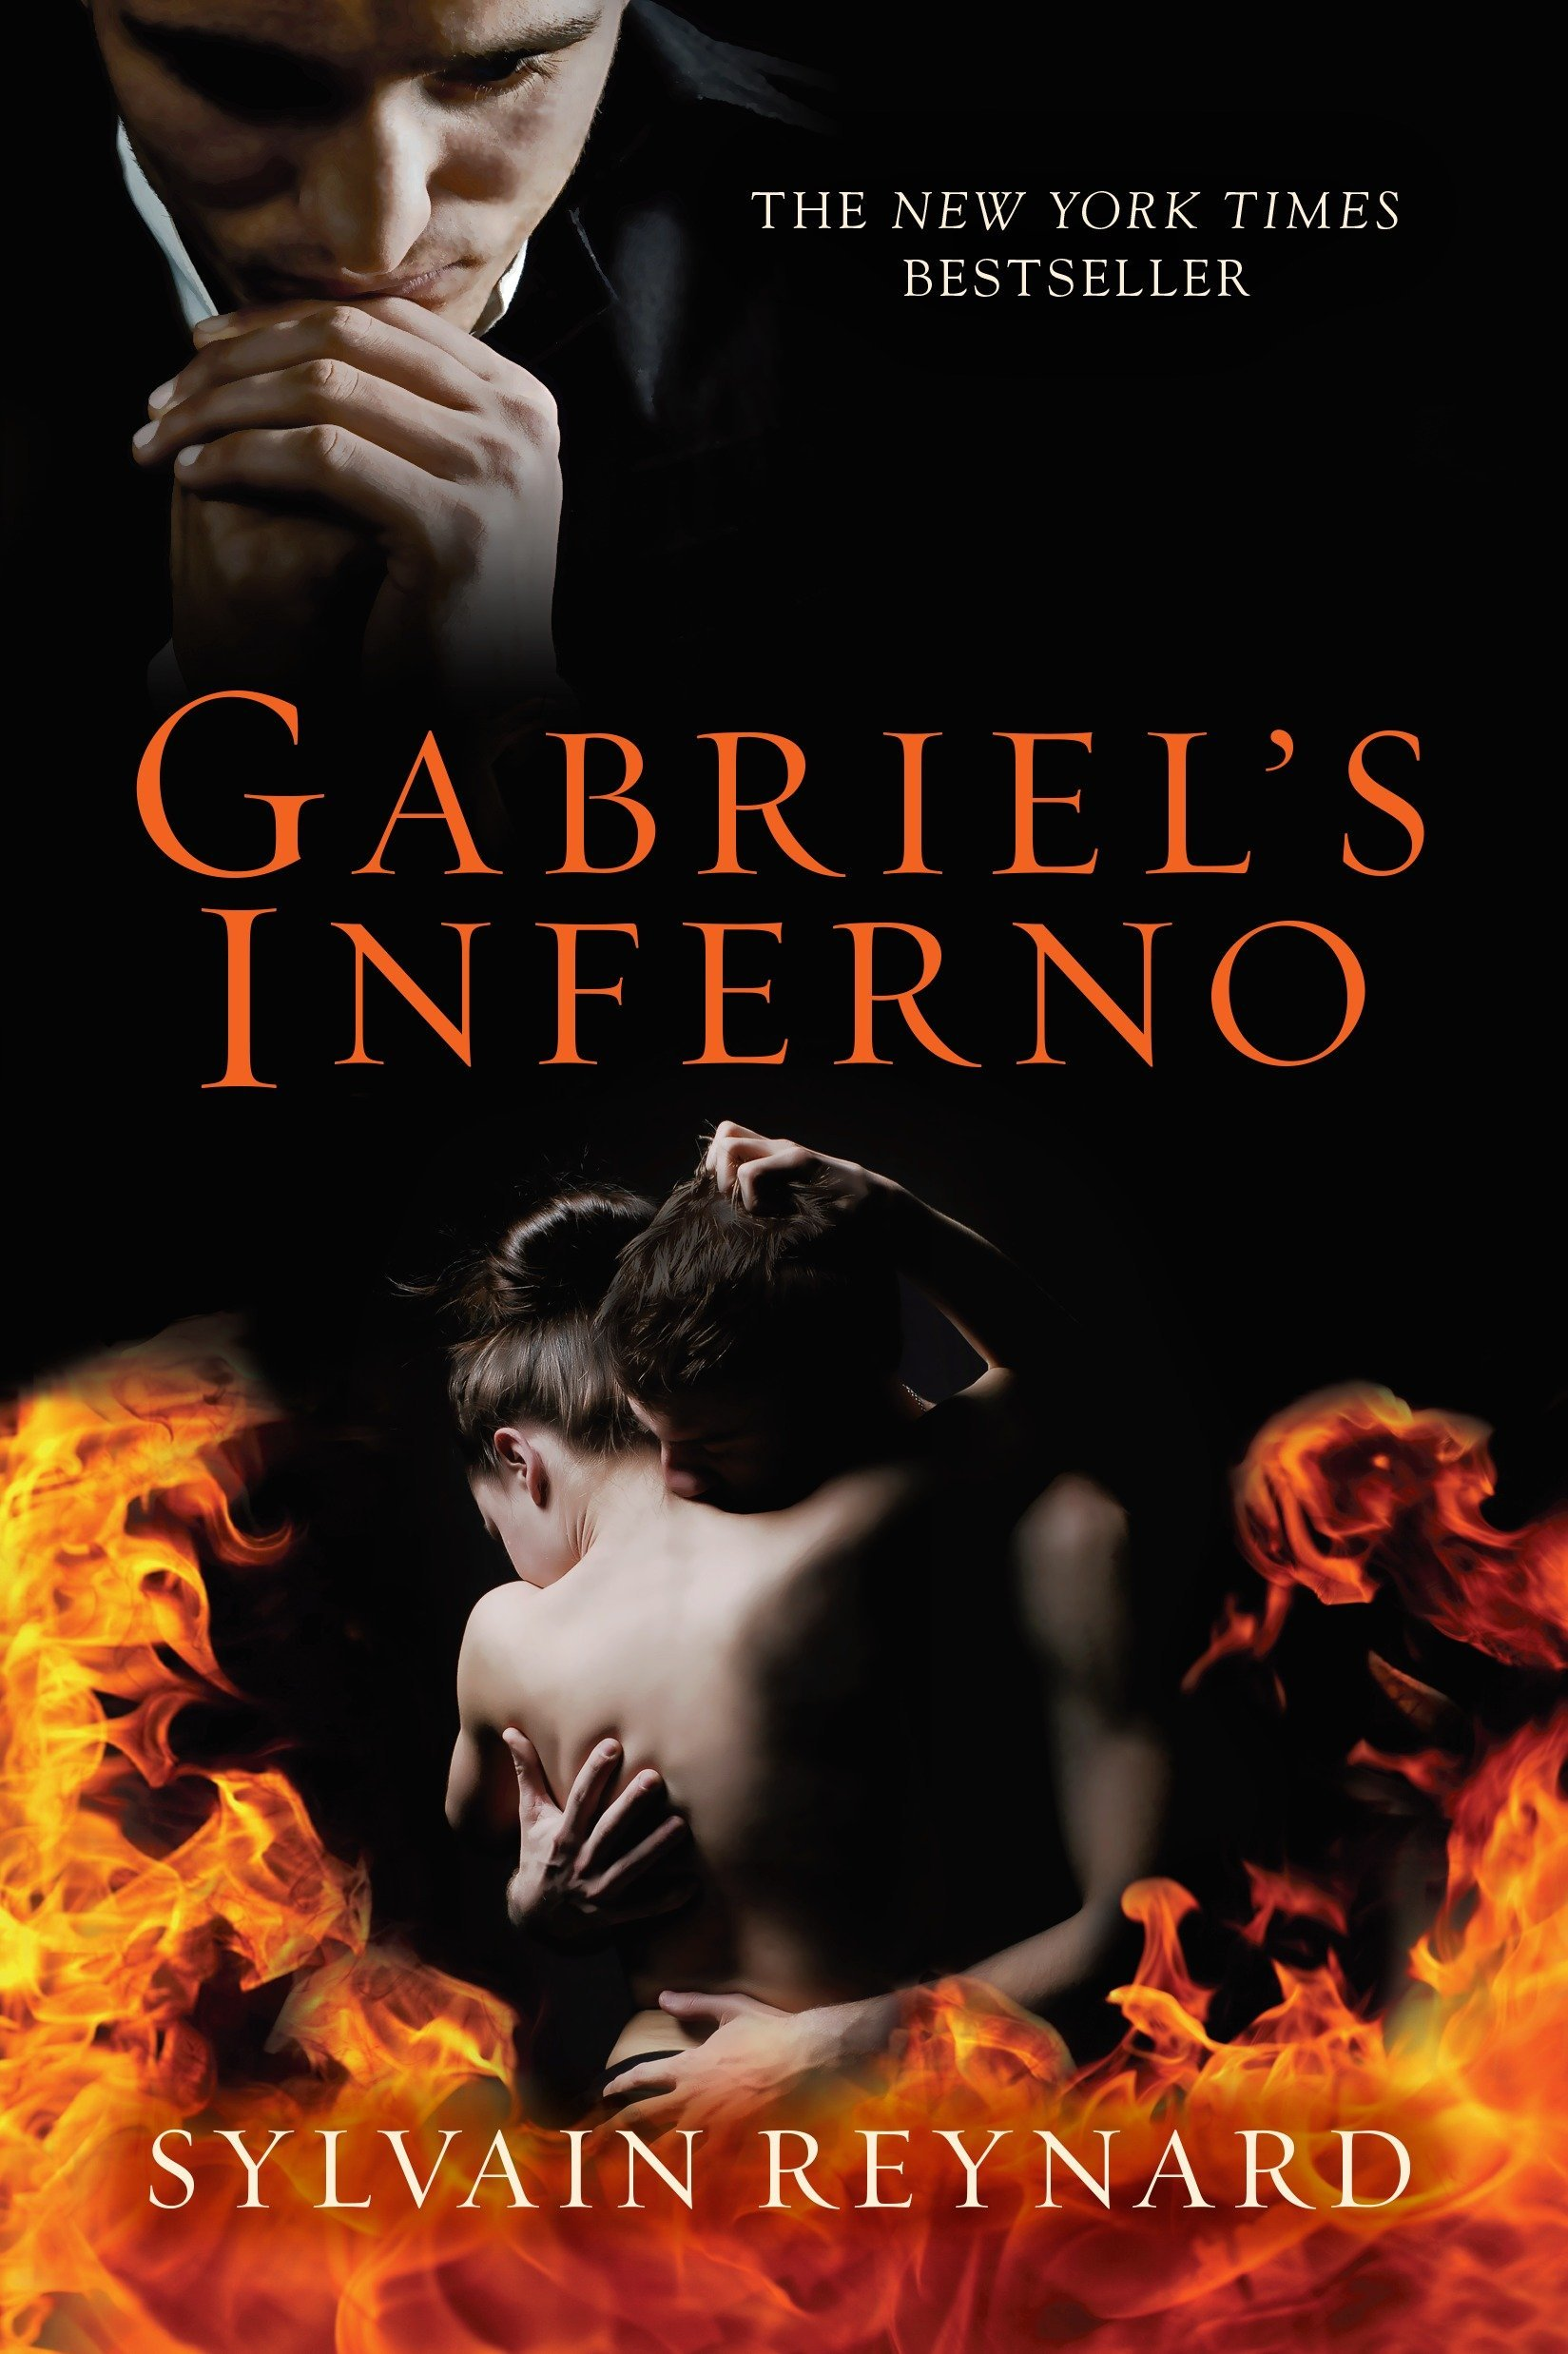 Image result for gabriels inferno book